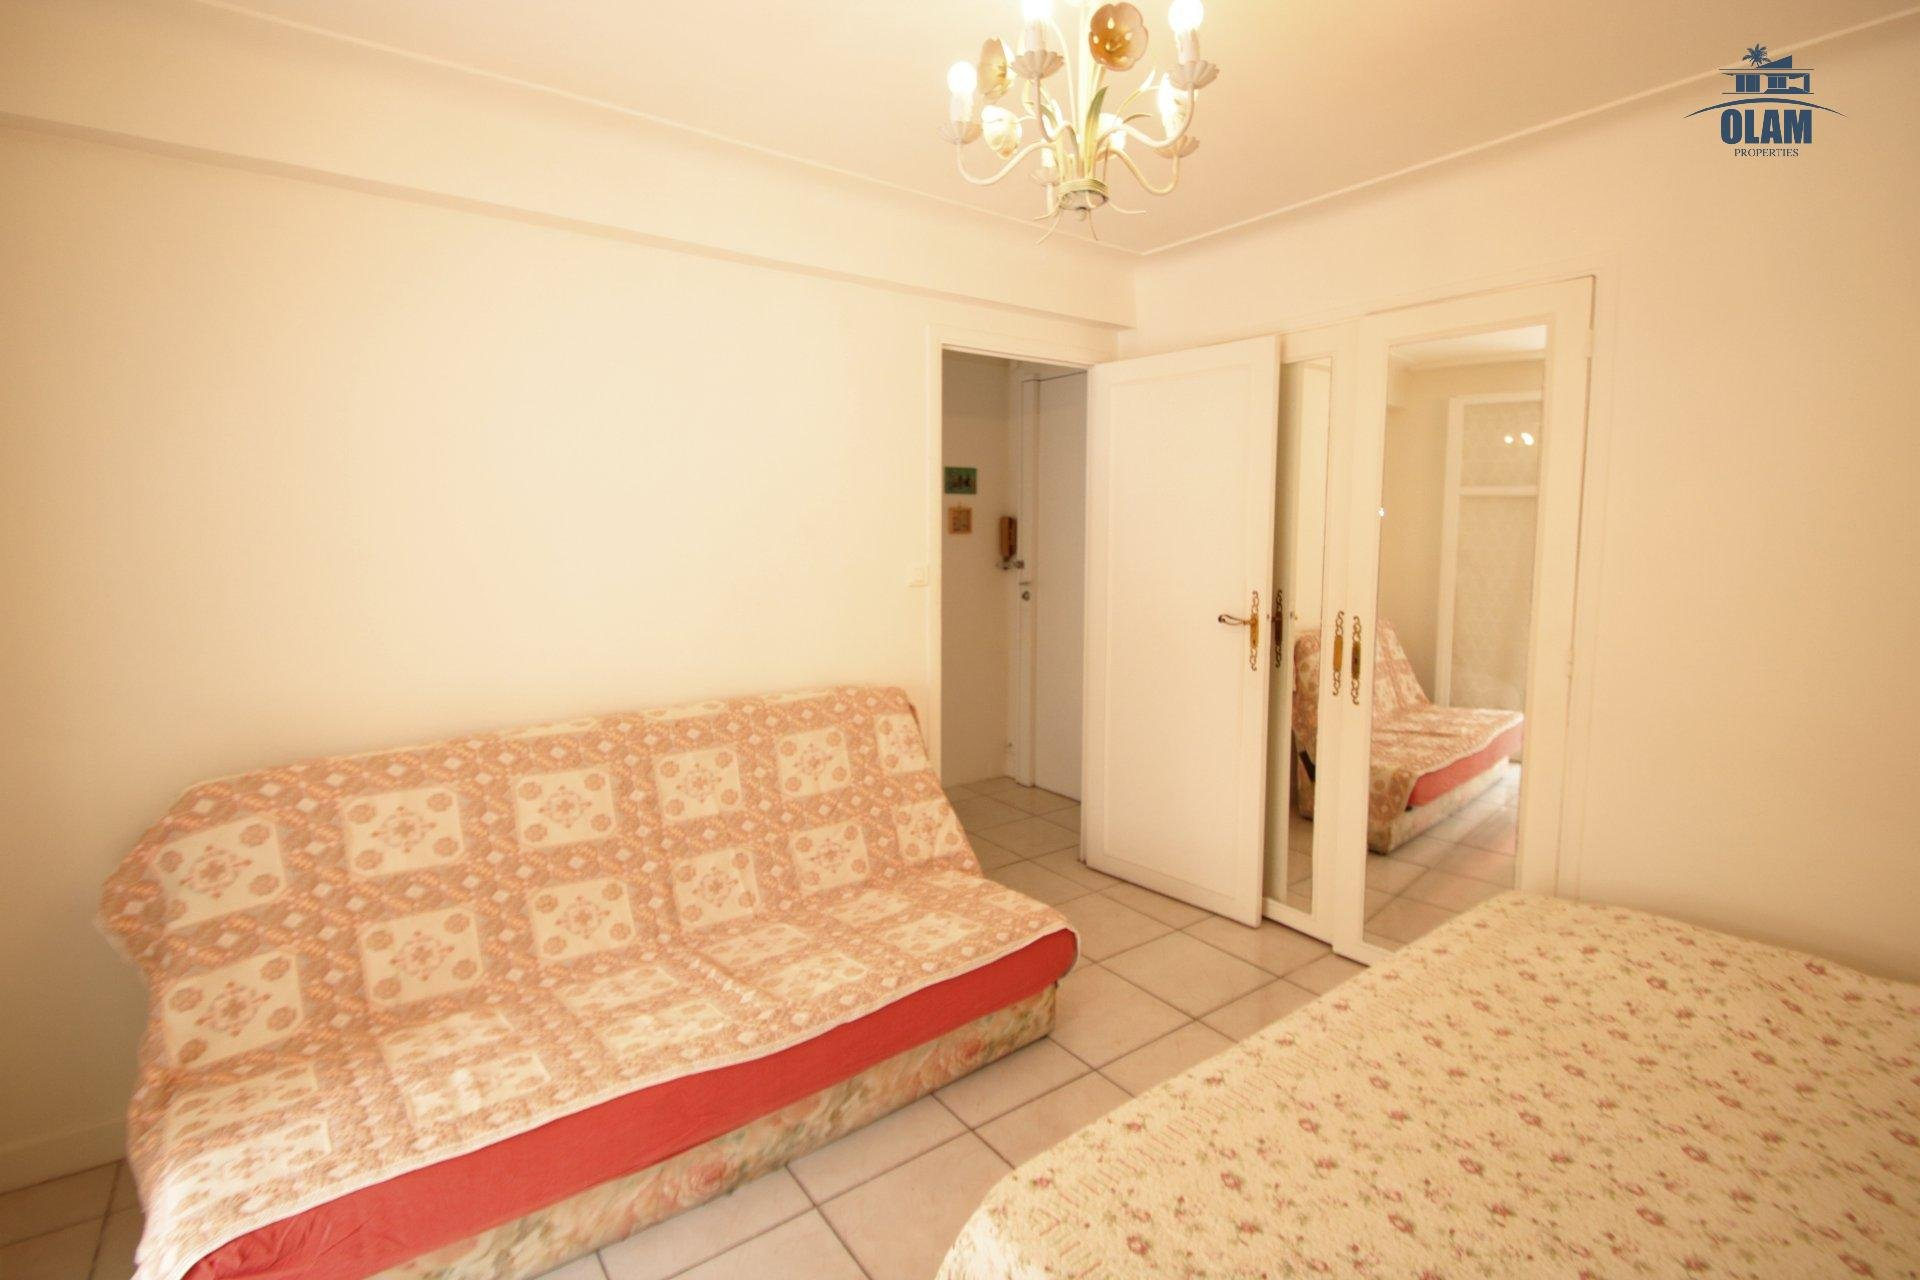 2-br apartment Croisette and Rue d'Antibes 1mn away